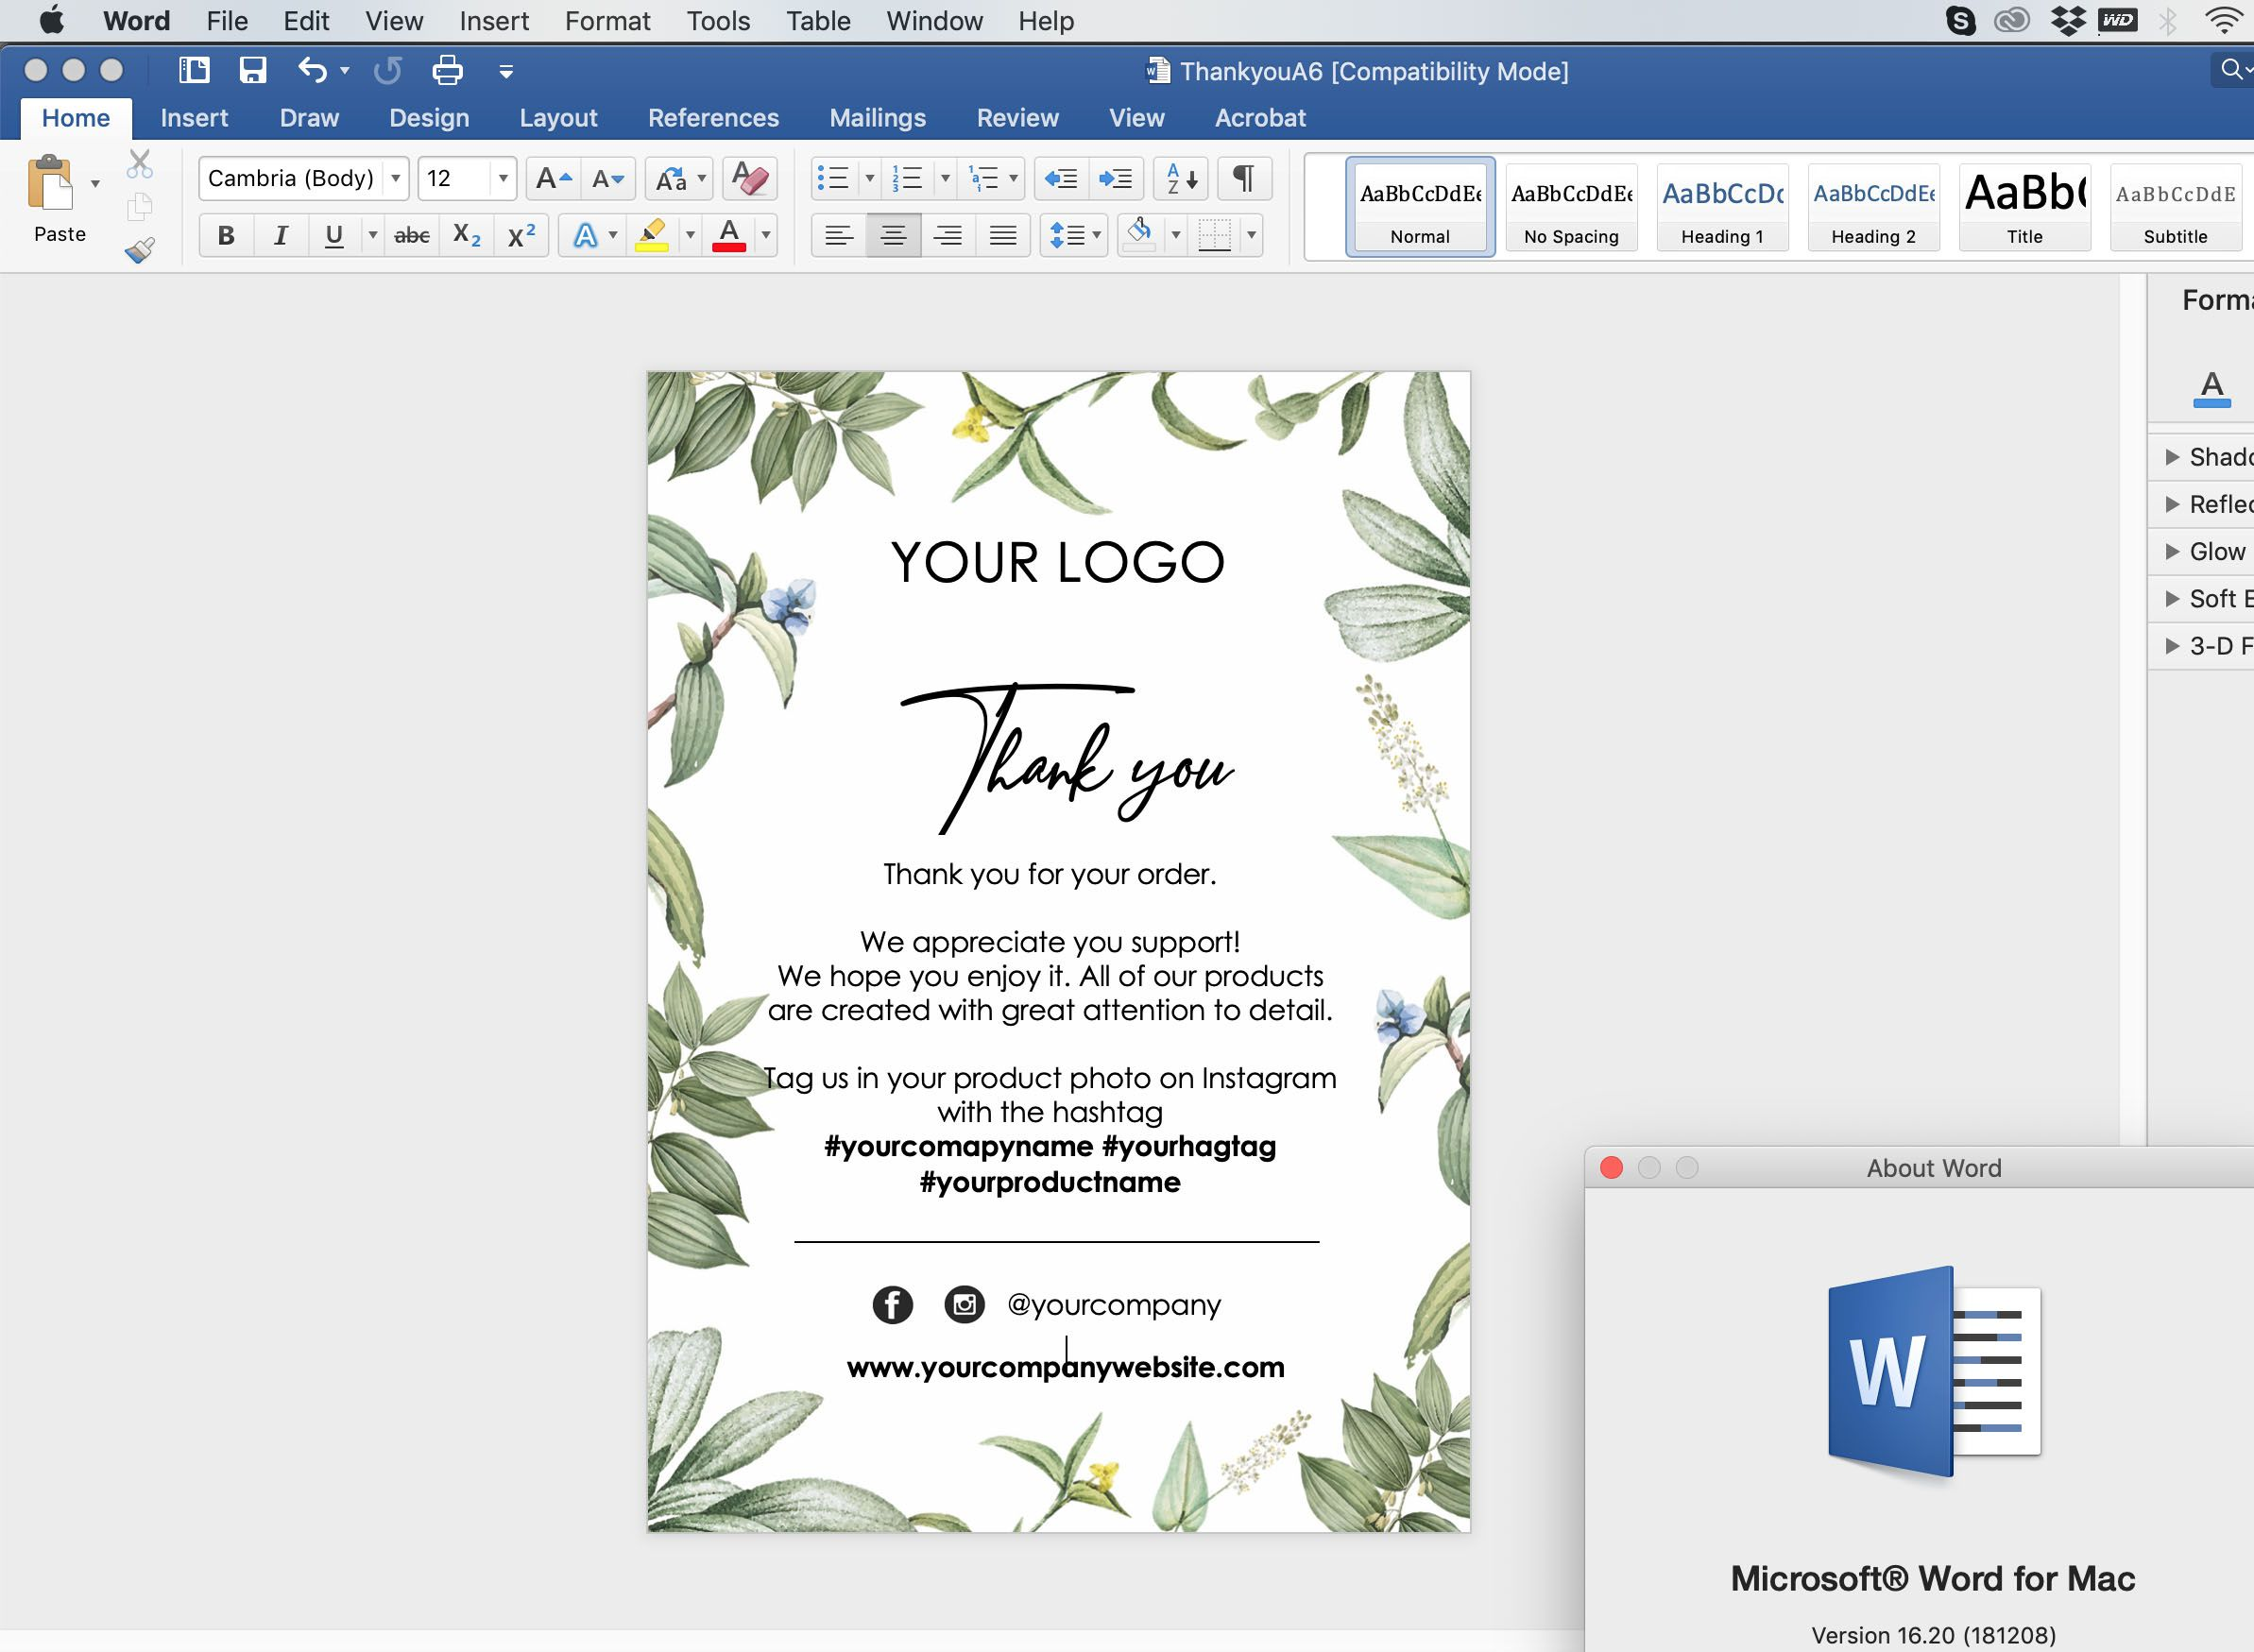 009 Unusual M Word Thank You Note Template Image  Microsoft Interview LetterFull